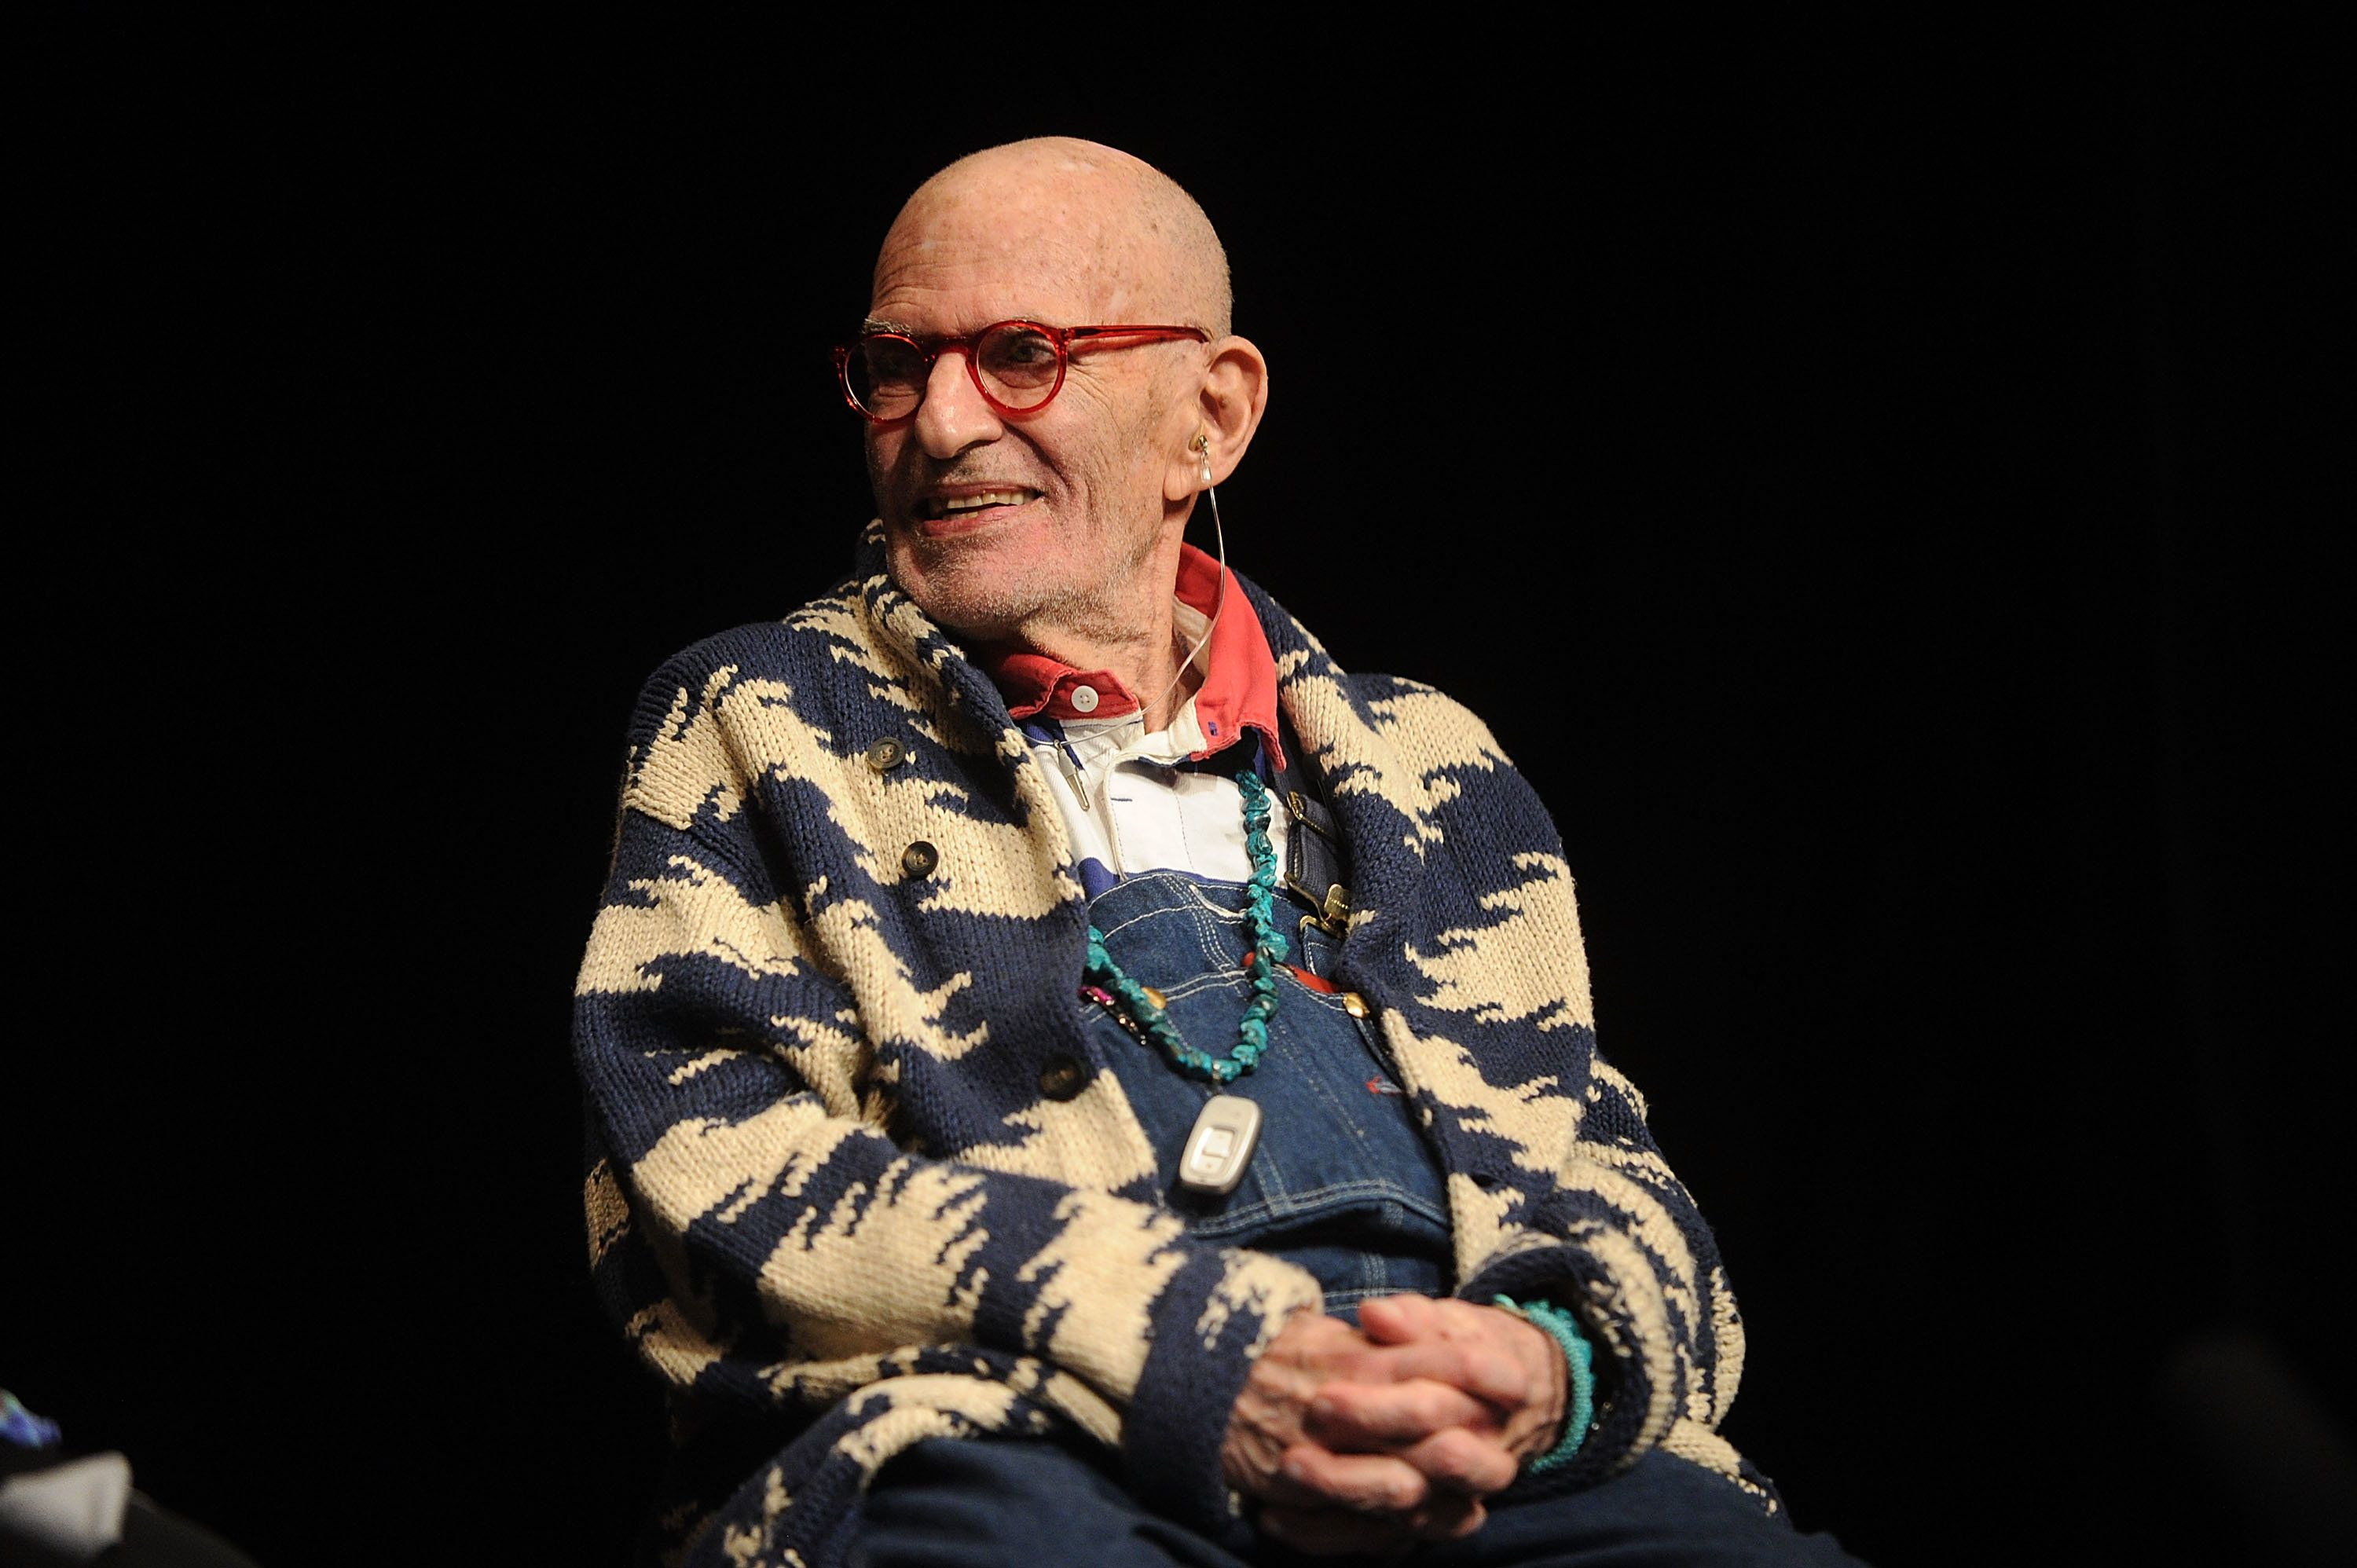 NEW YORK, NY - SEPTEMBER 30:  Playwright Larry Kramer attends the 2016 #IdentityWeek Reception at Vineyard Theatre on September 30, 2016 in New York City.  (Photo by Brad Barket/Getty Images)